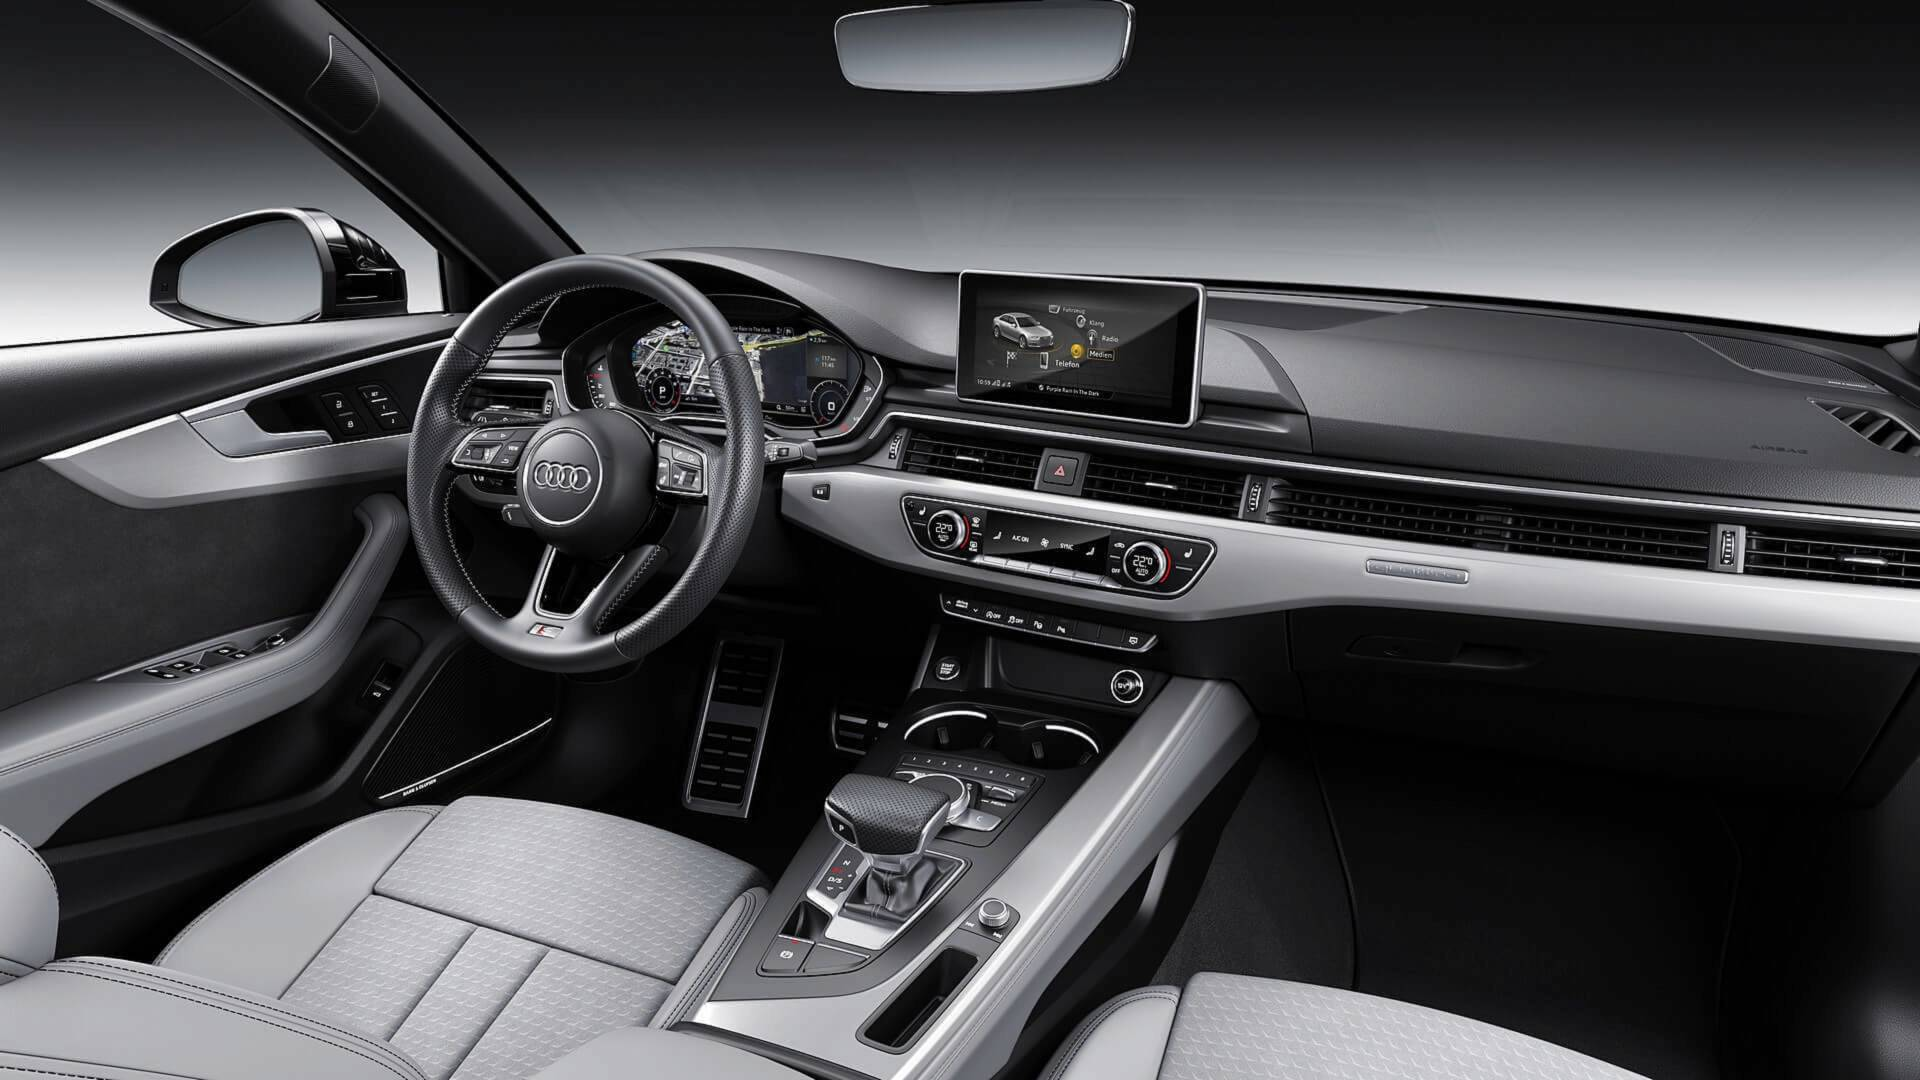 2019 Audi A4 Facelift Doesn't Look All That Different From ...